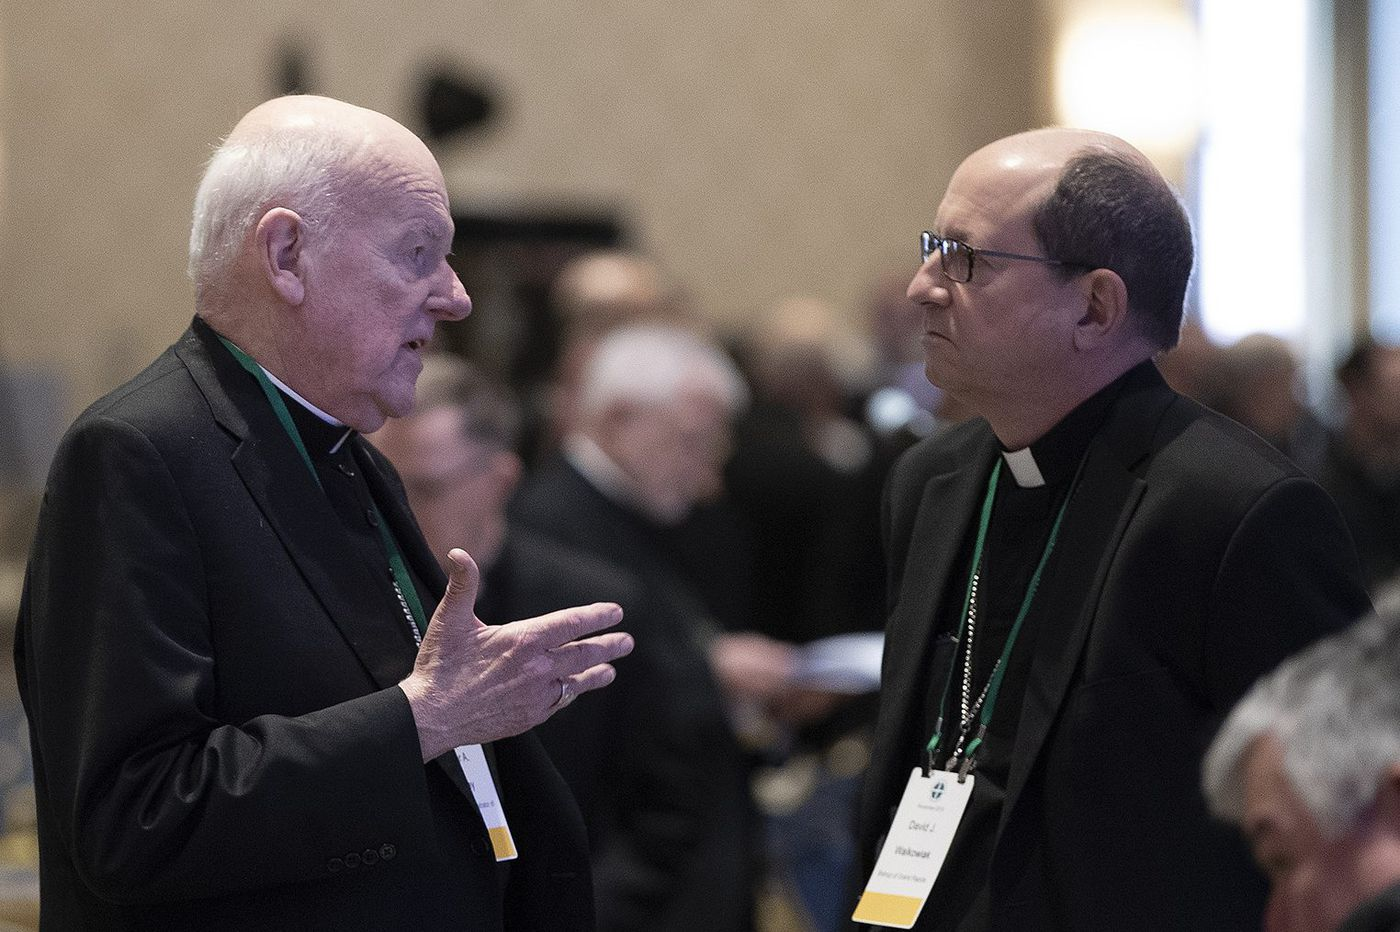 How a generational divide shapes U.S. bishops' response to sex abuse